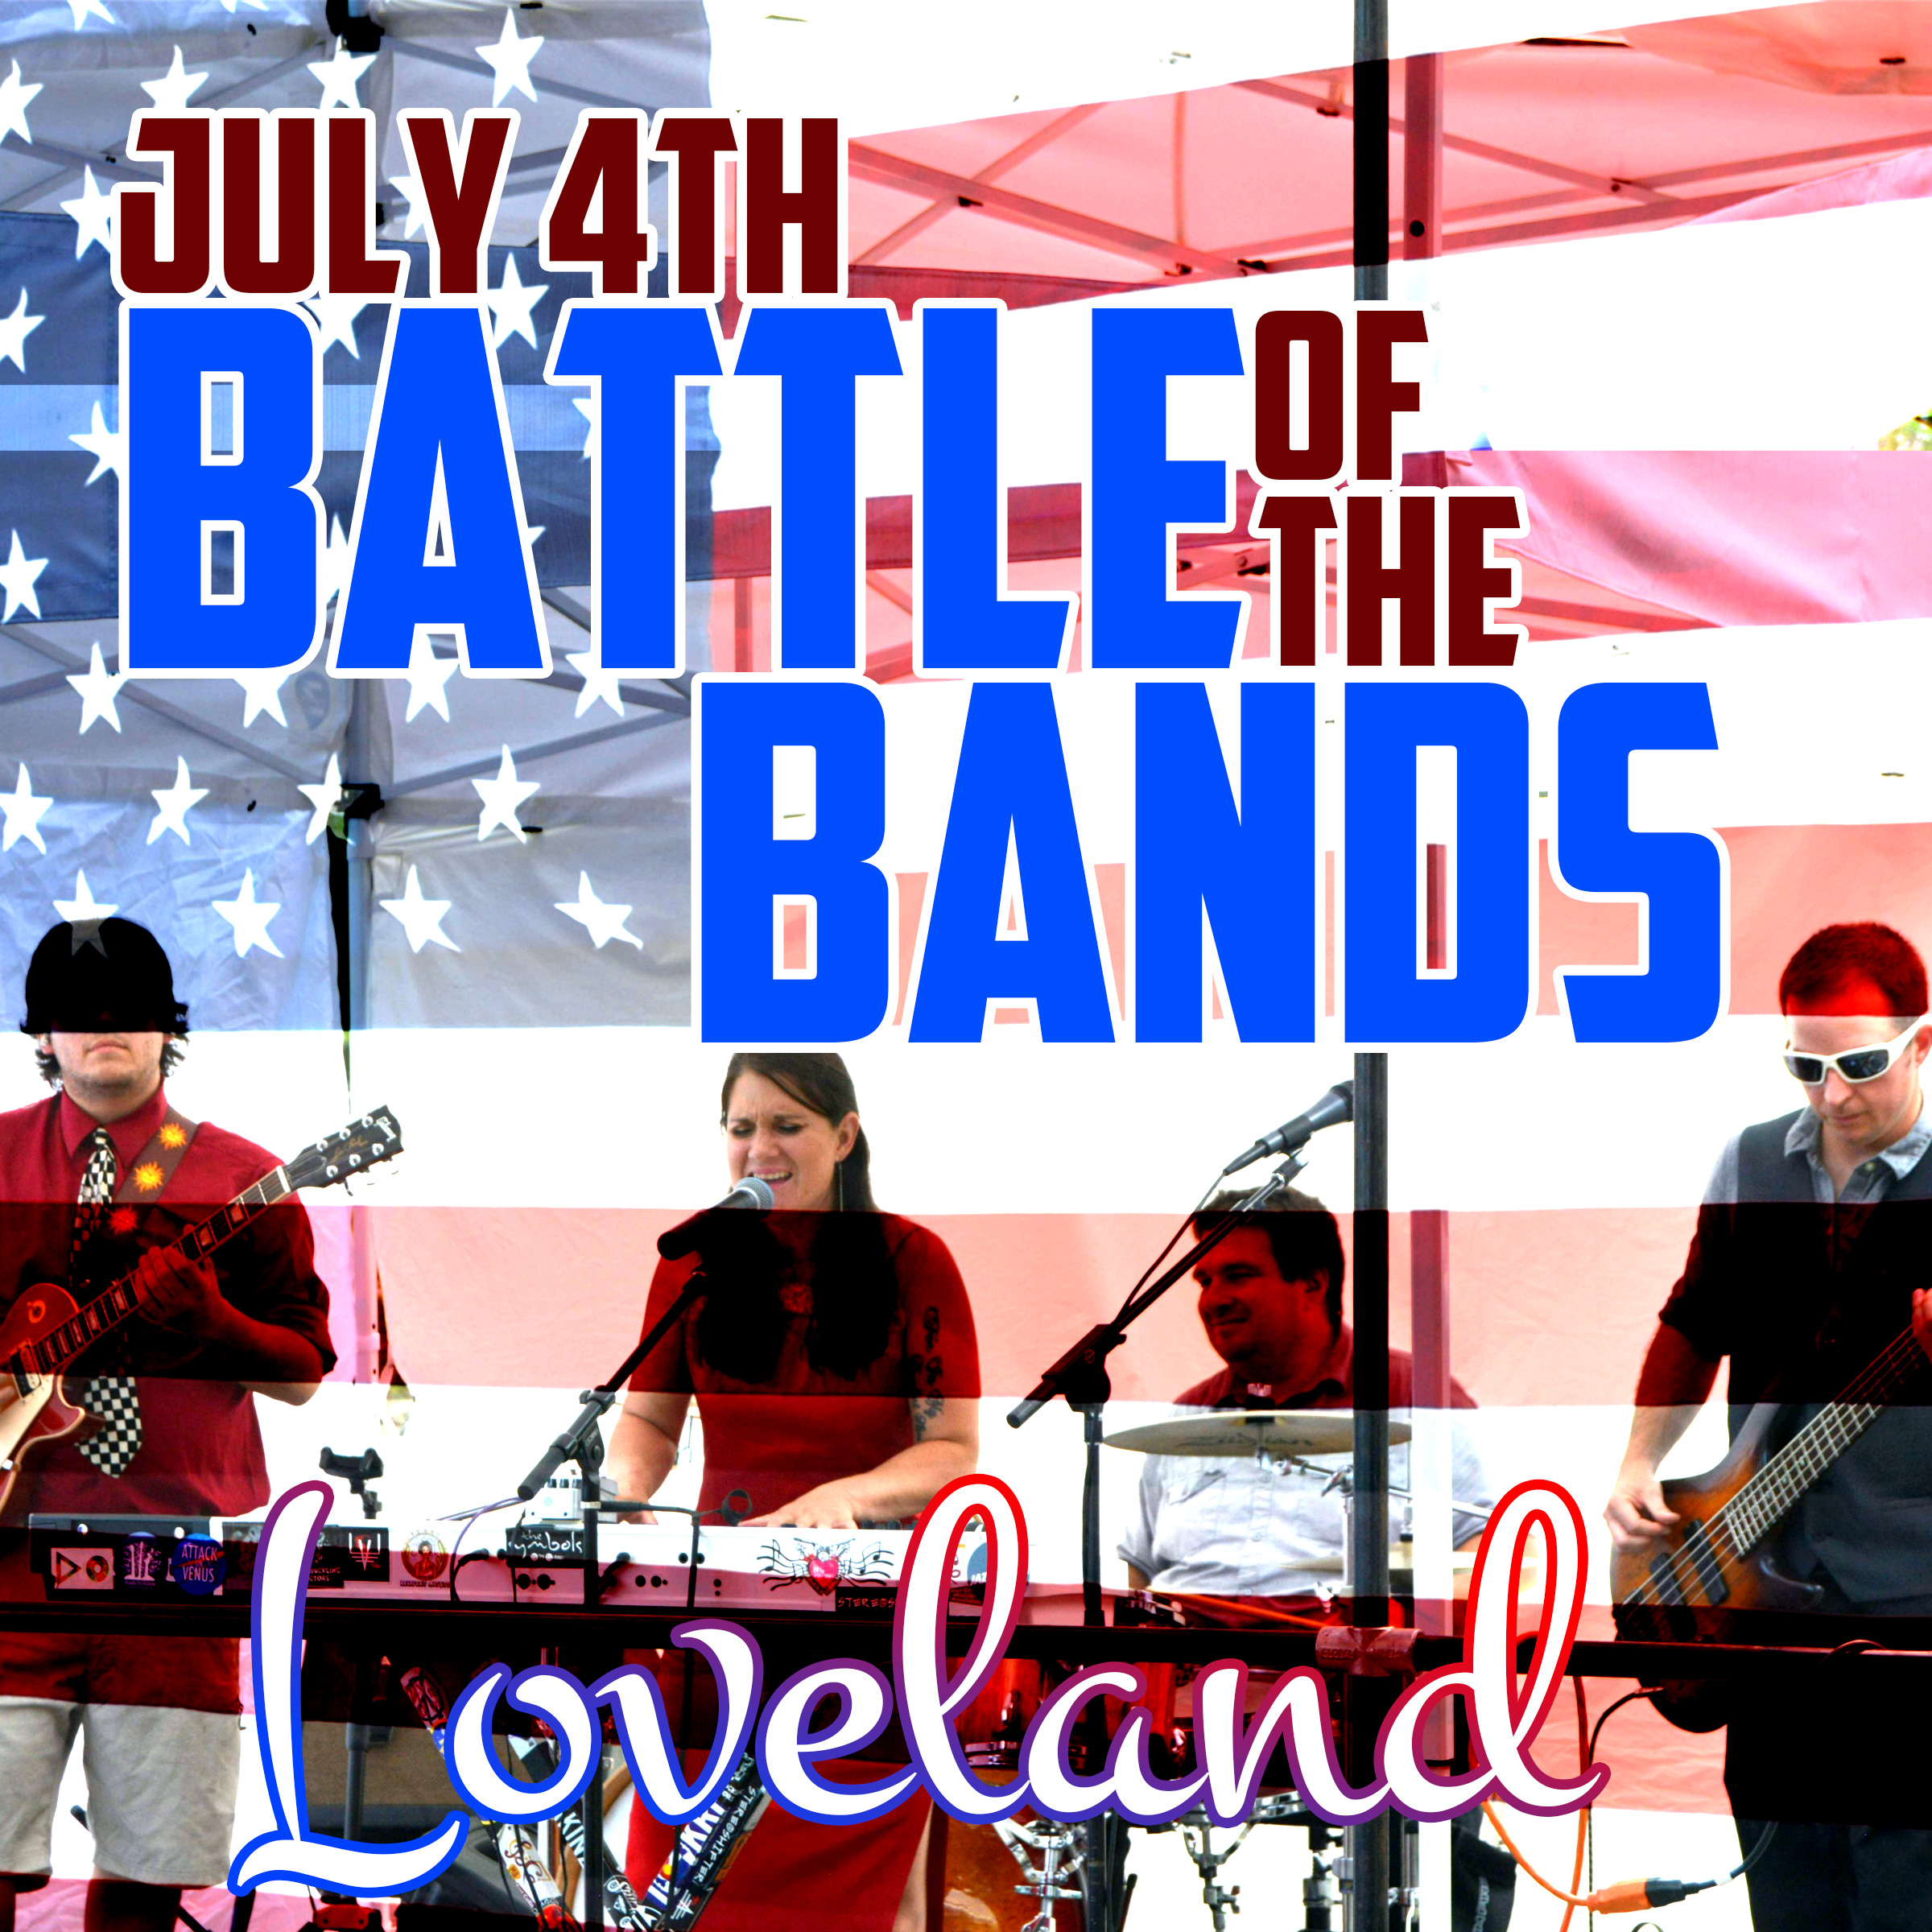 SURPRISE July 4th Performance at Loveland Battle of the Bands